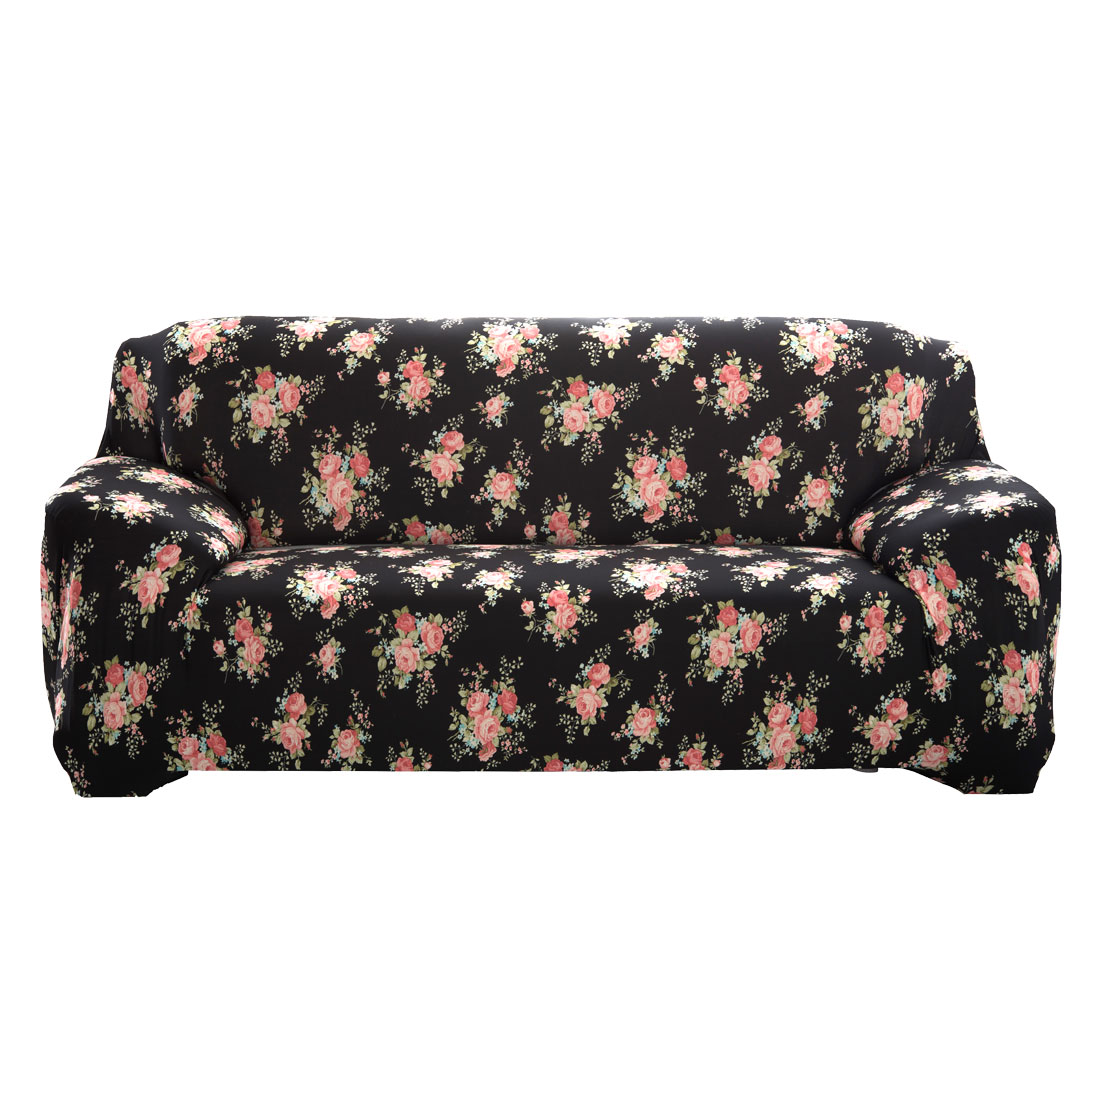 """Unique Bargains 74"""" - 90"""" Black Sofa Cover Slipcovers Protector Stretch 3 Seats Flower Pattern"""